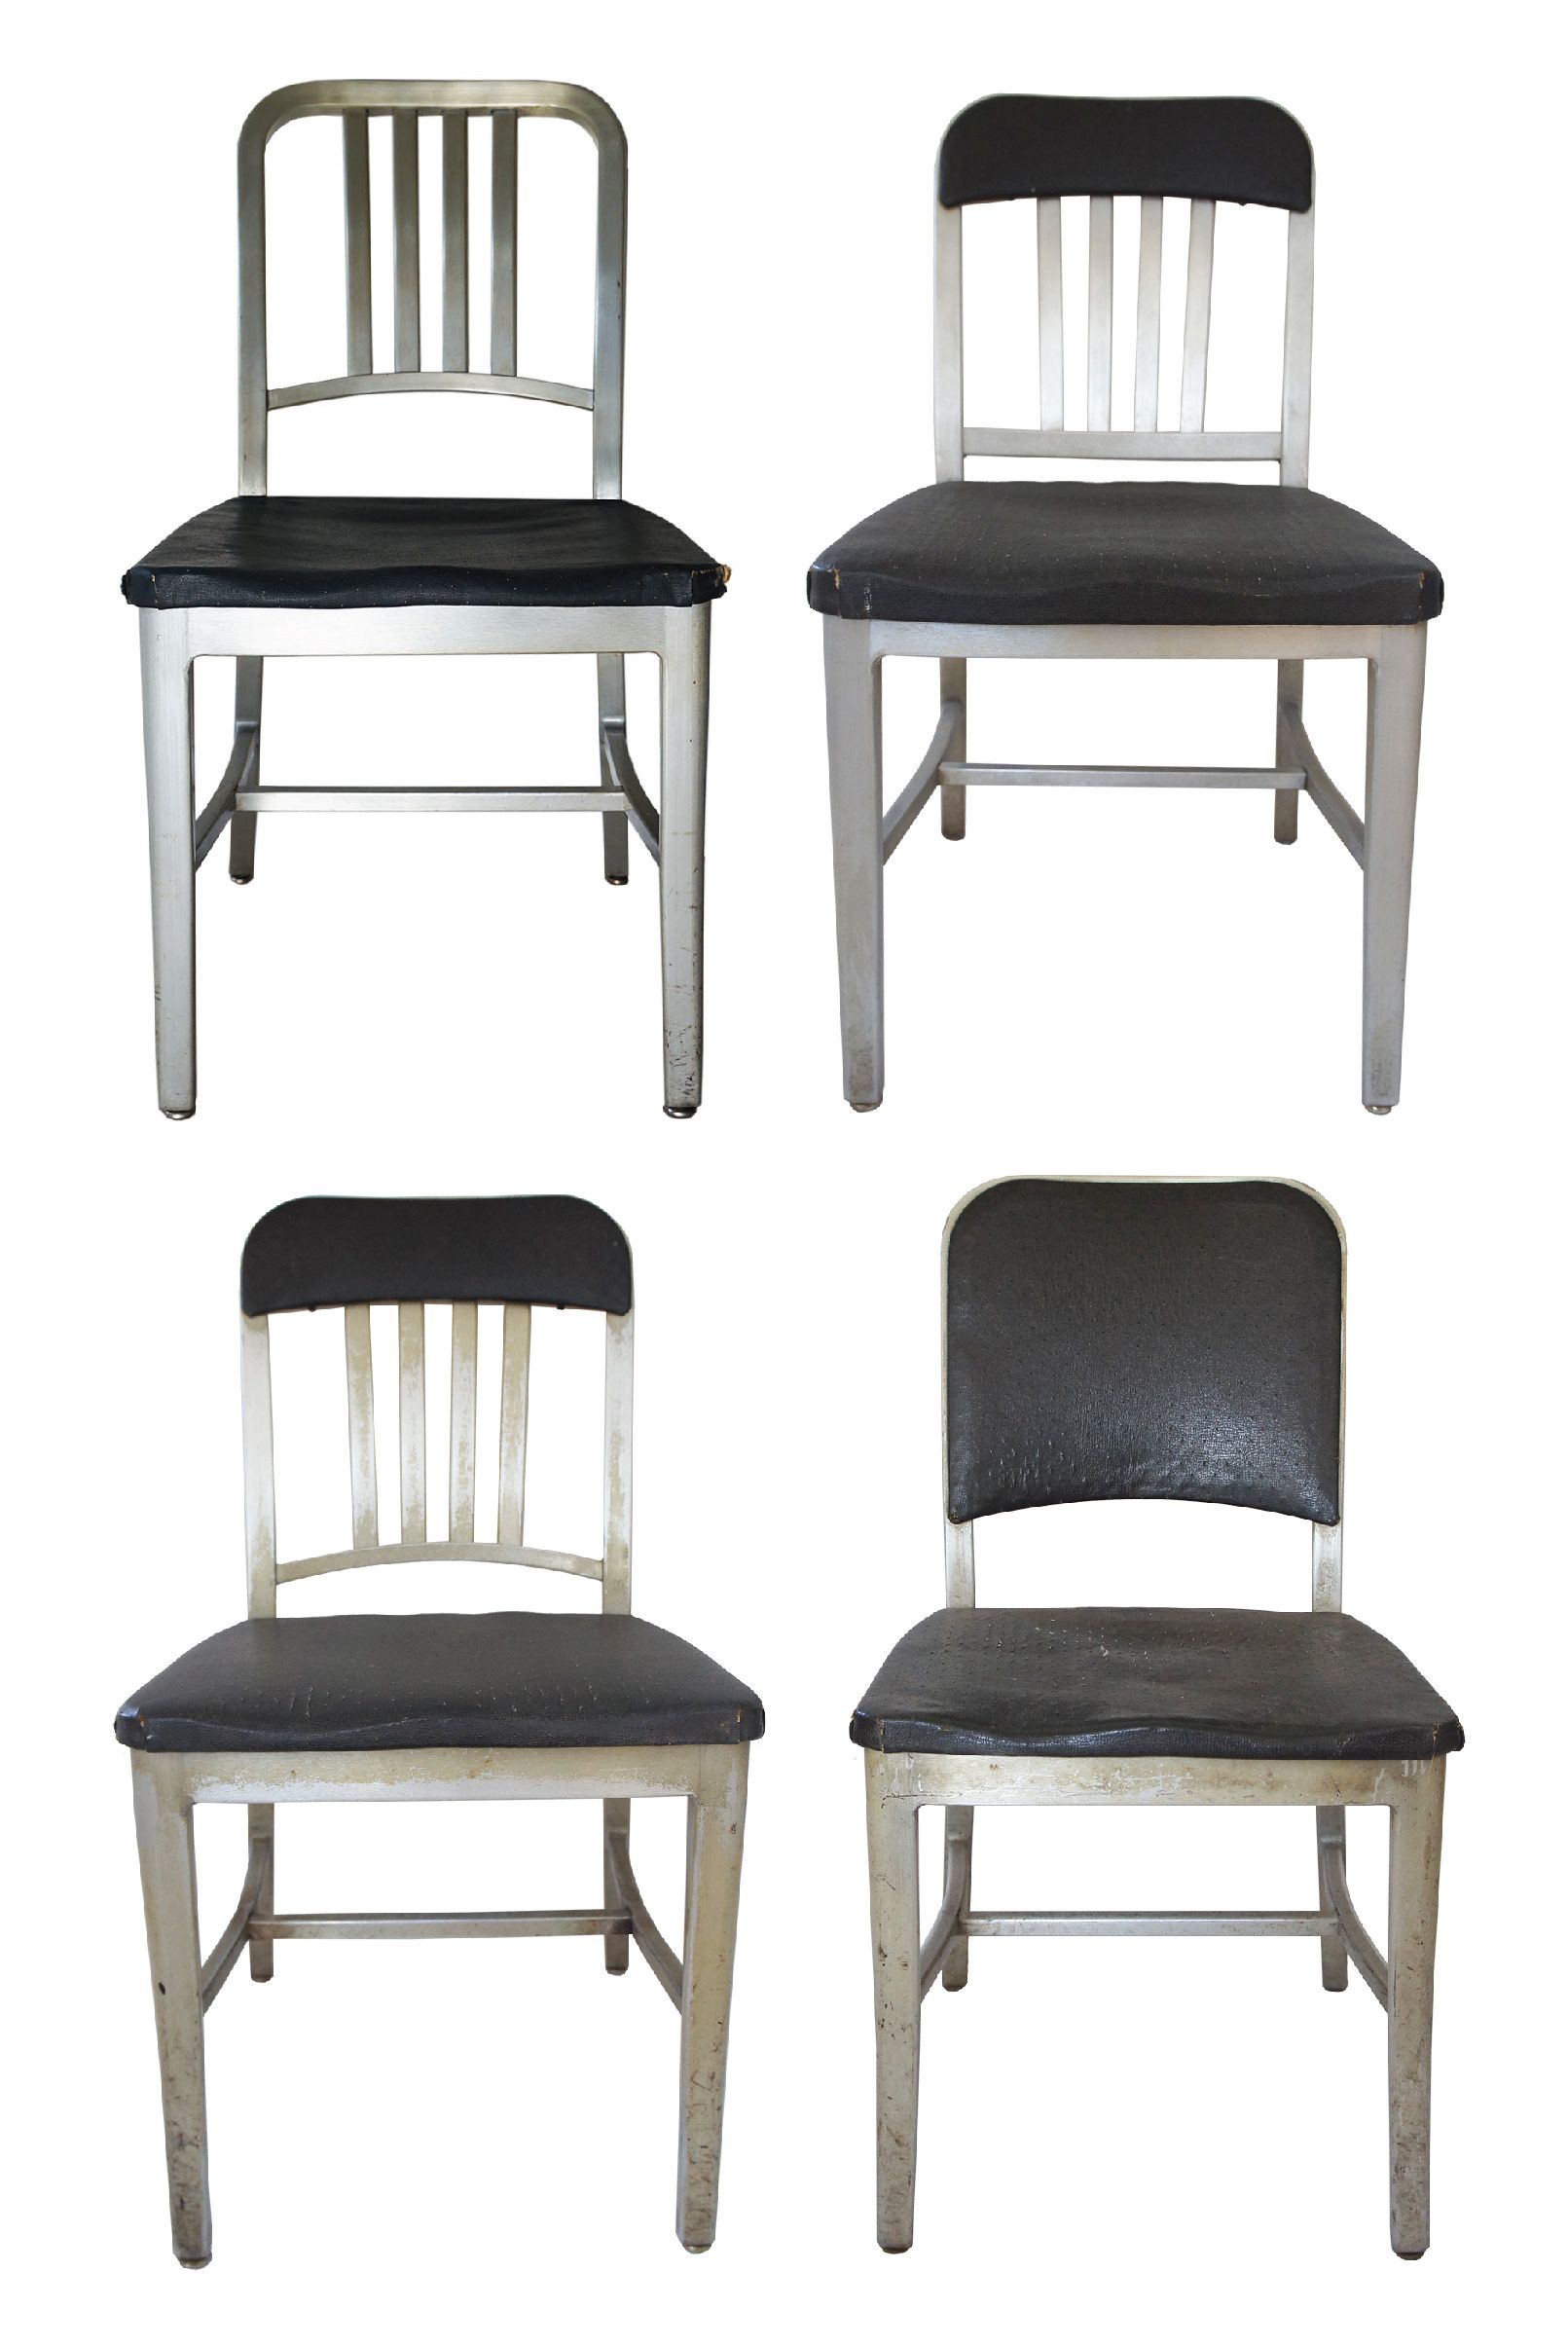 emeco aluminum navy chairs assorted set of 4